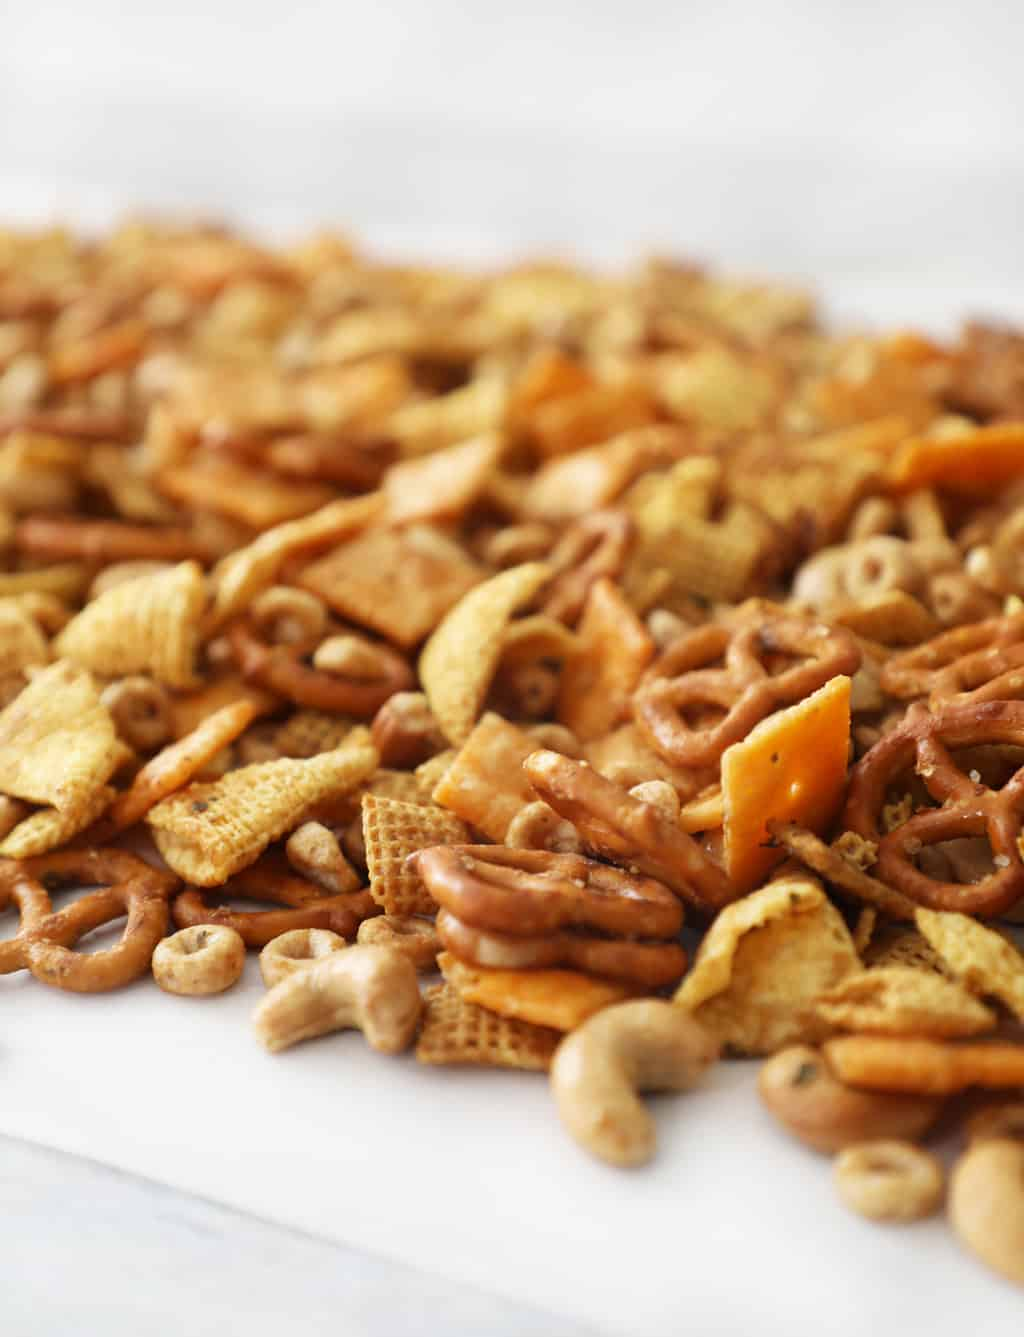 homemade Chex mix laid out on parchment paper to cool